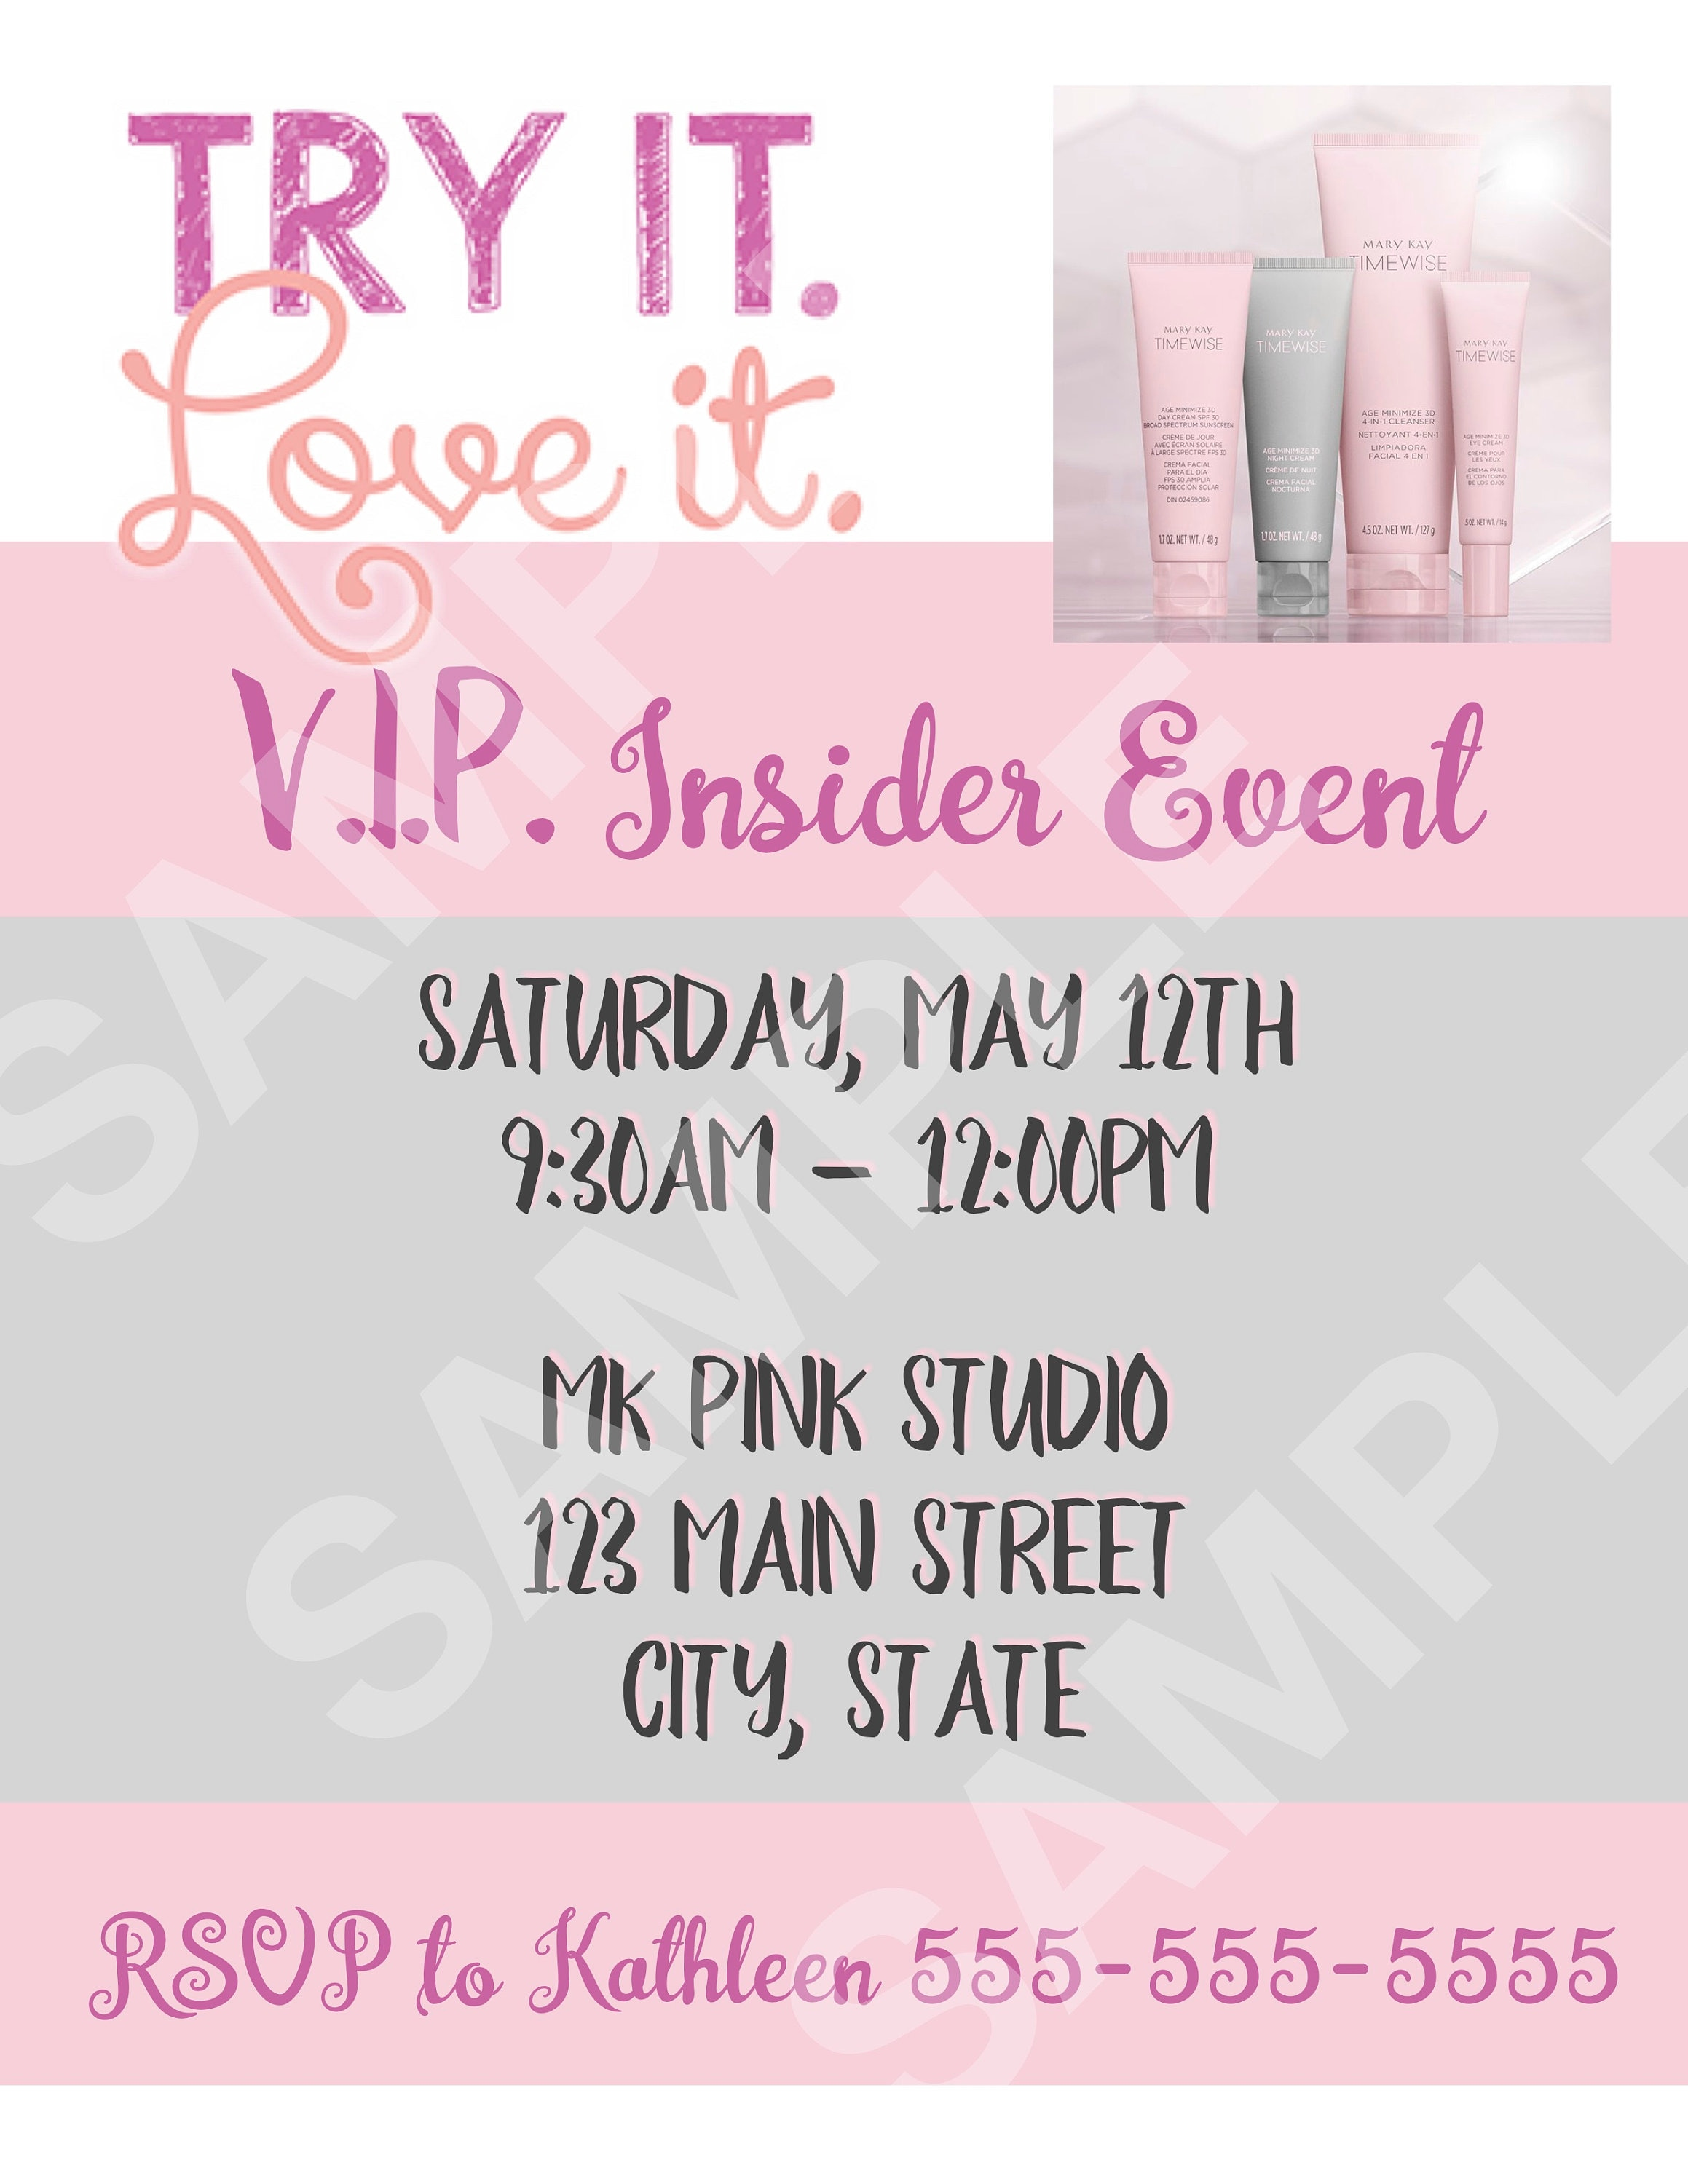 Mary Kay TimeWise Miracle Set 3D Event Flyer